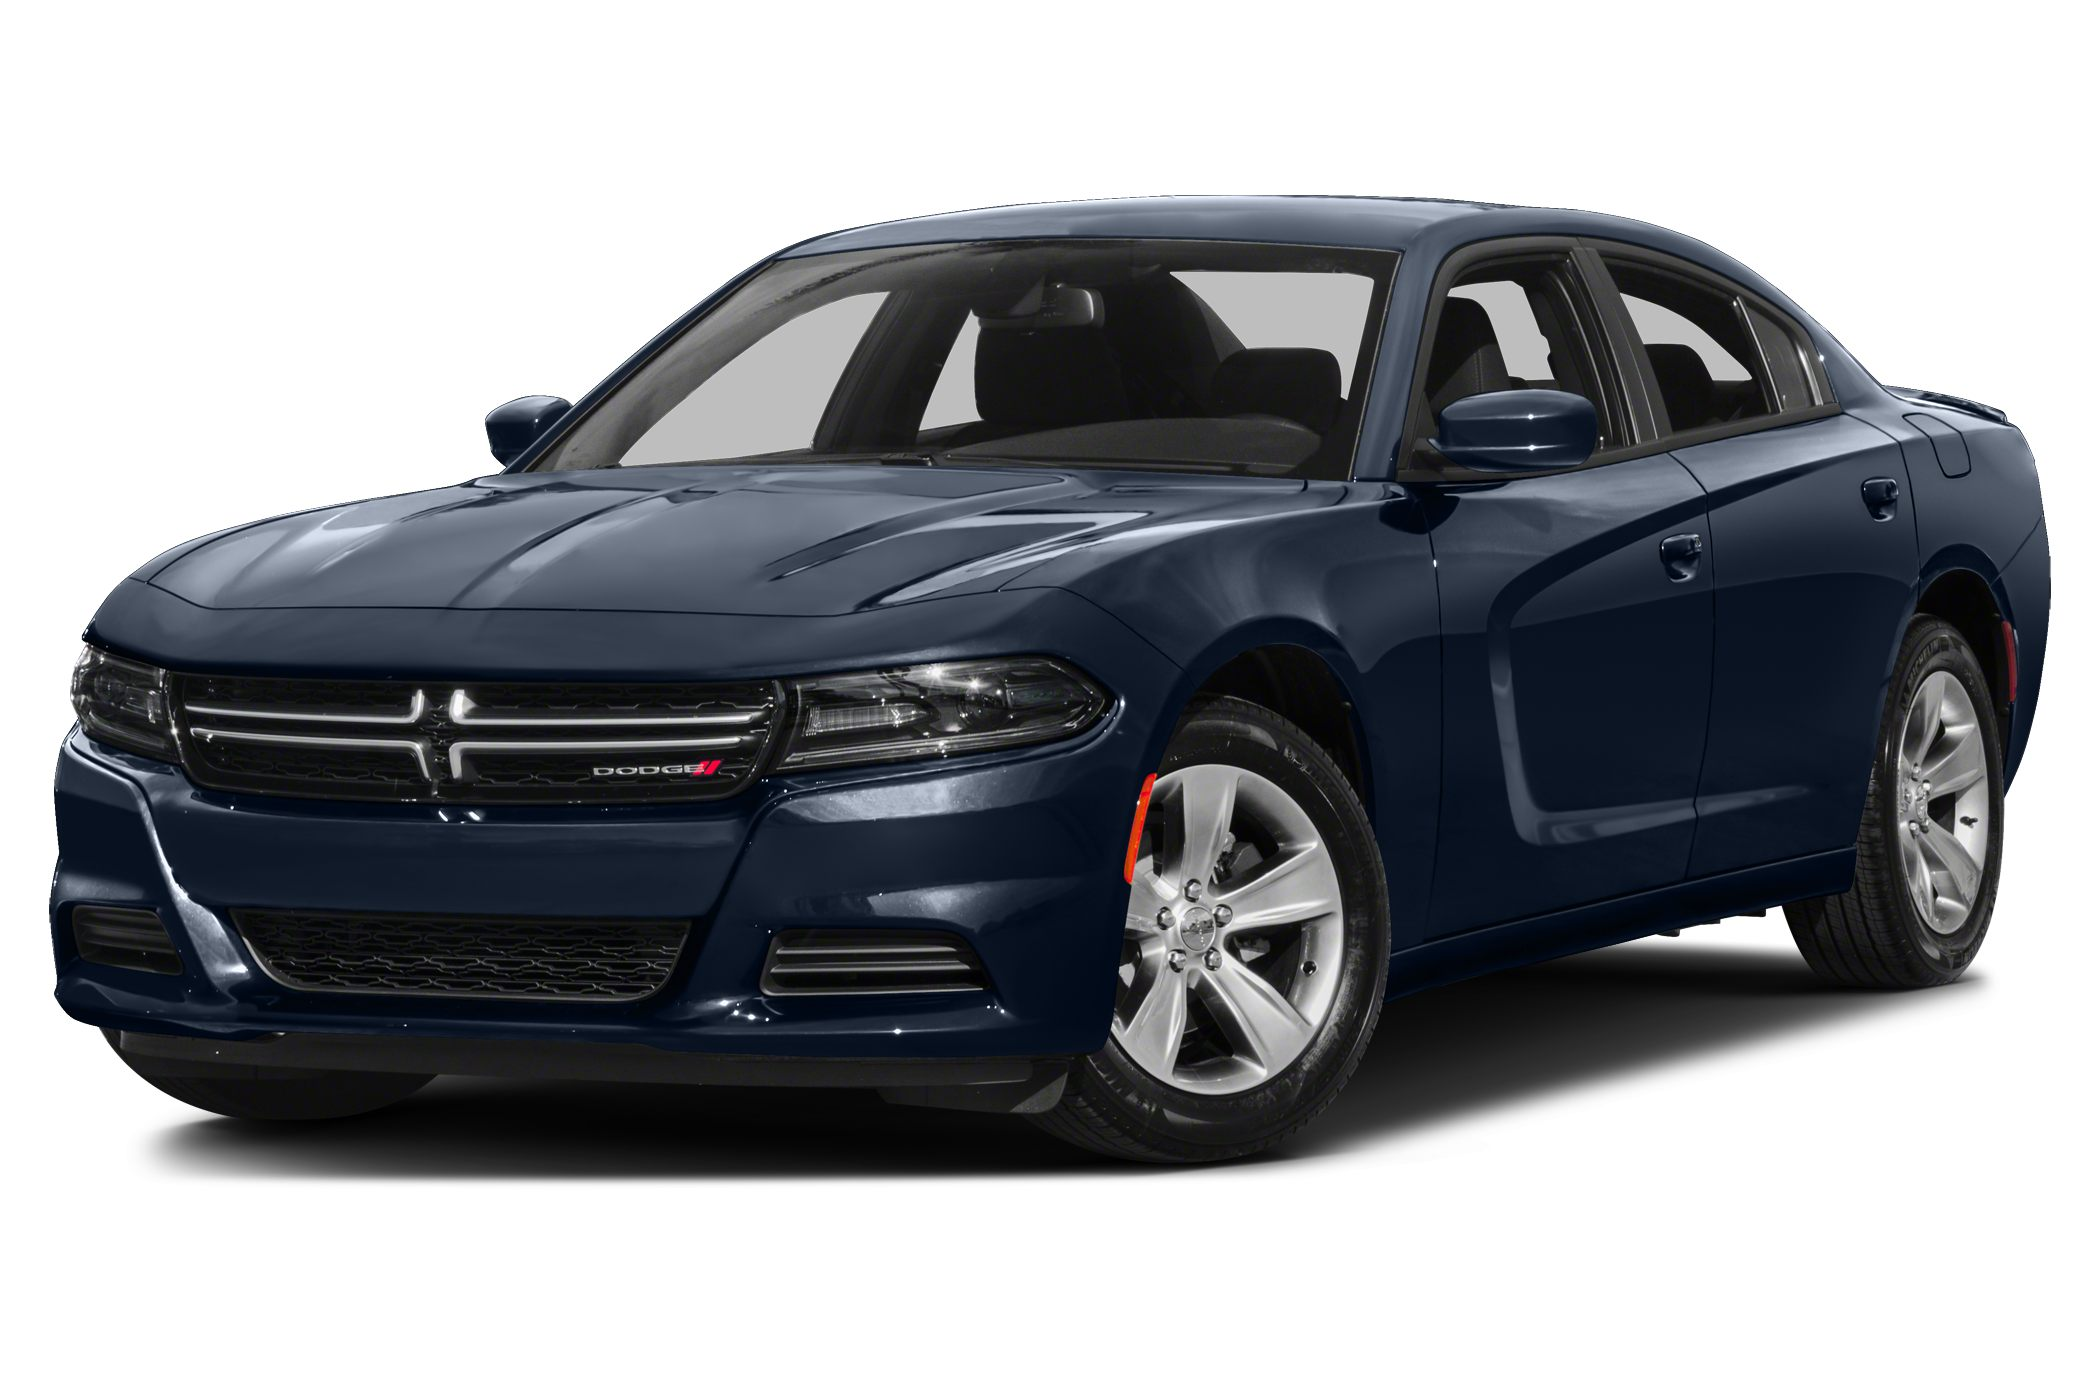 2016DodgeCharger